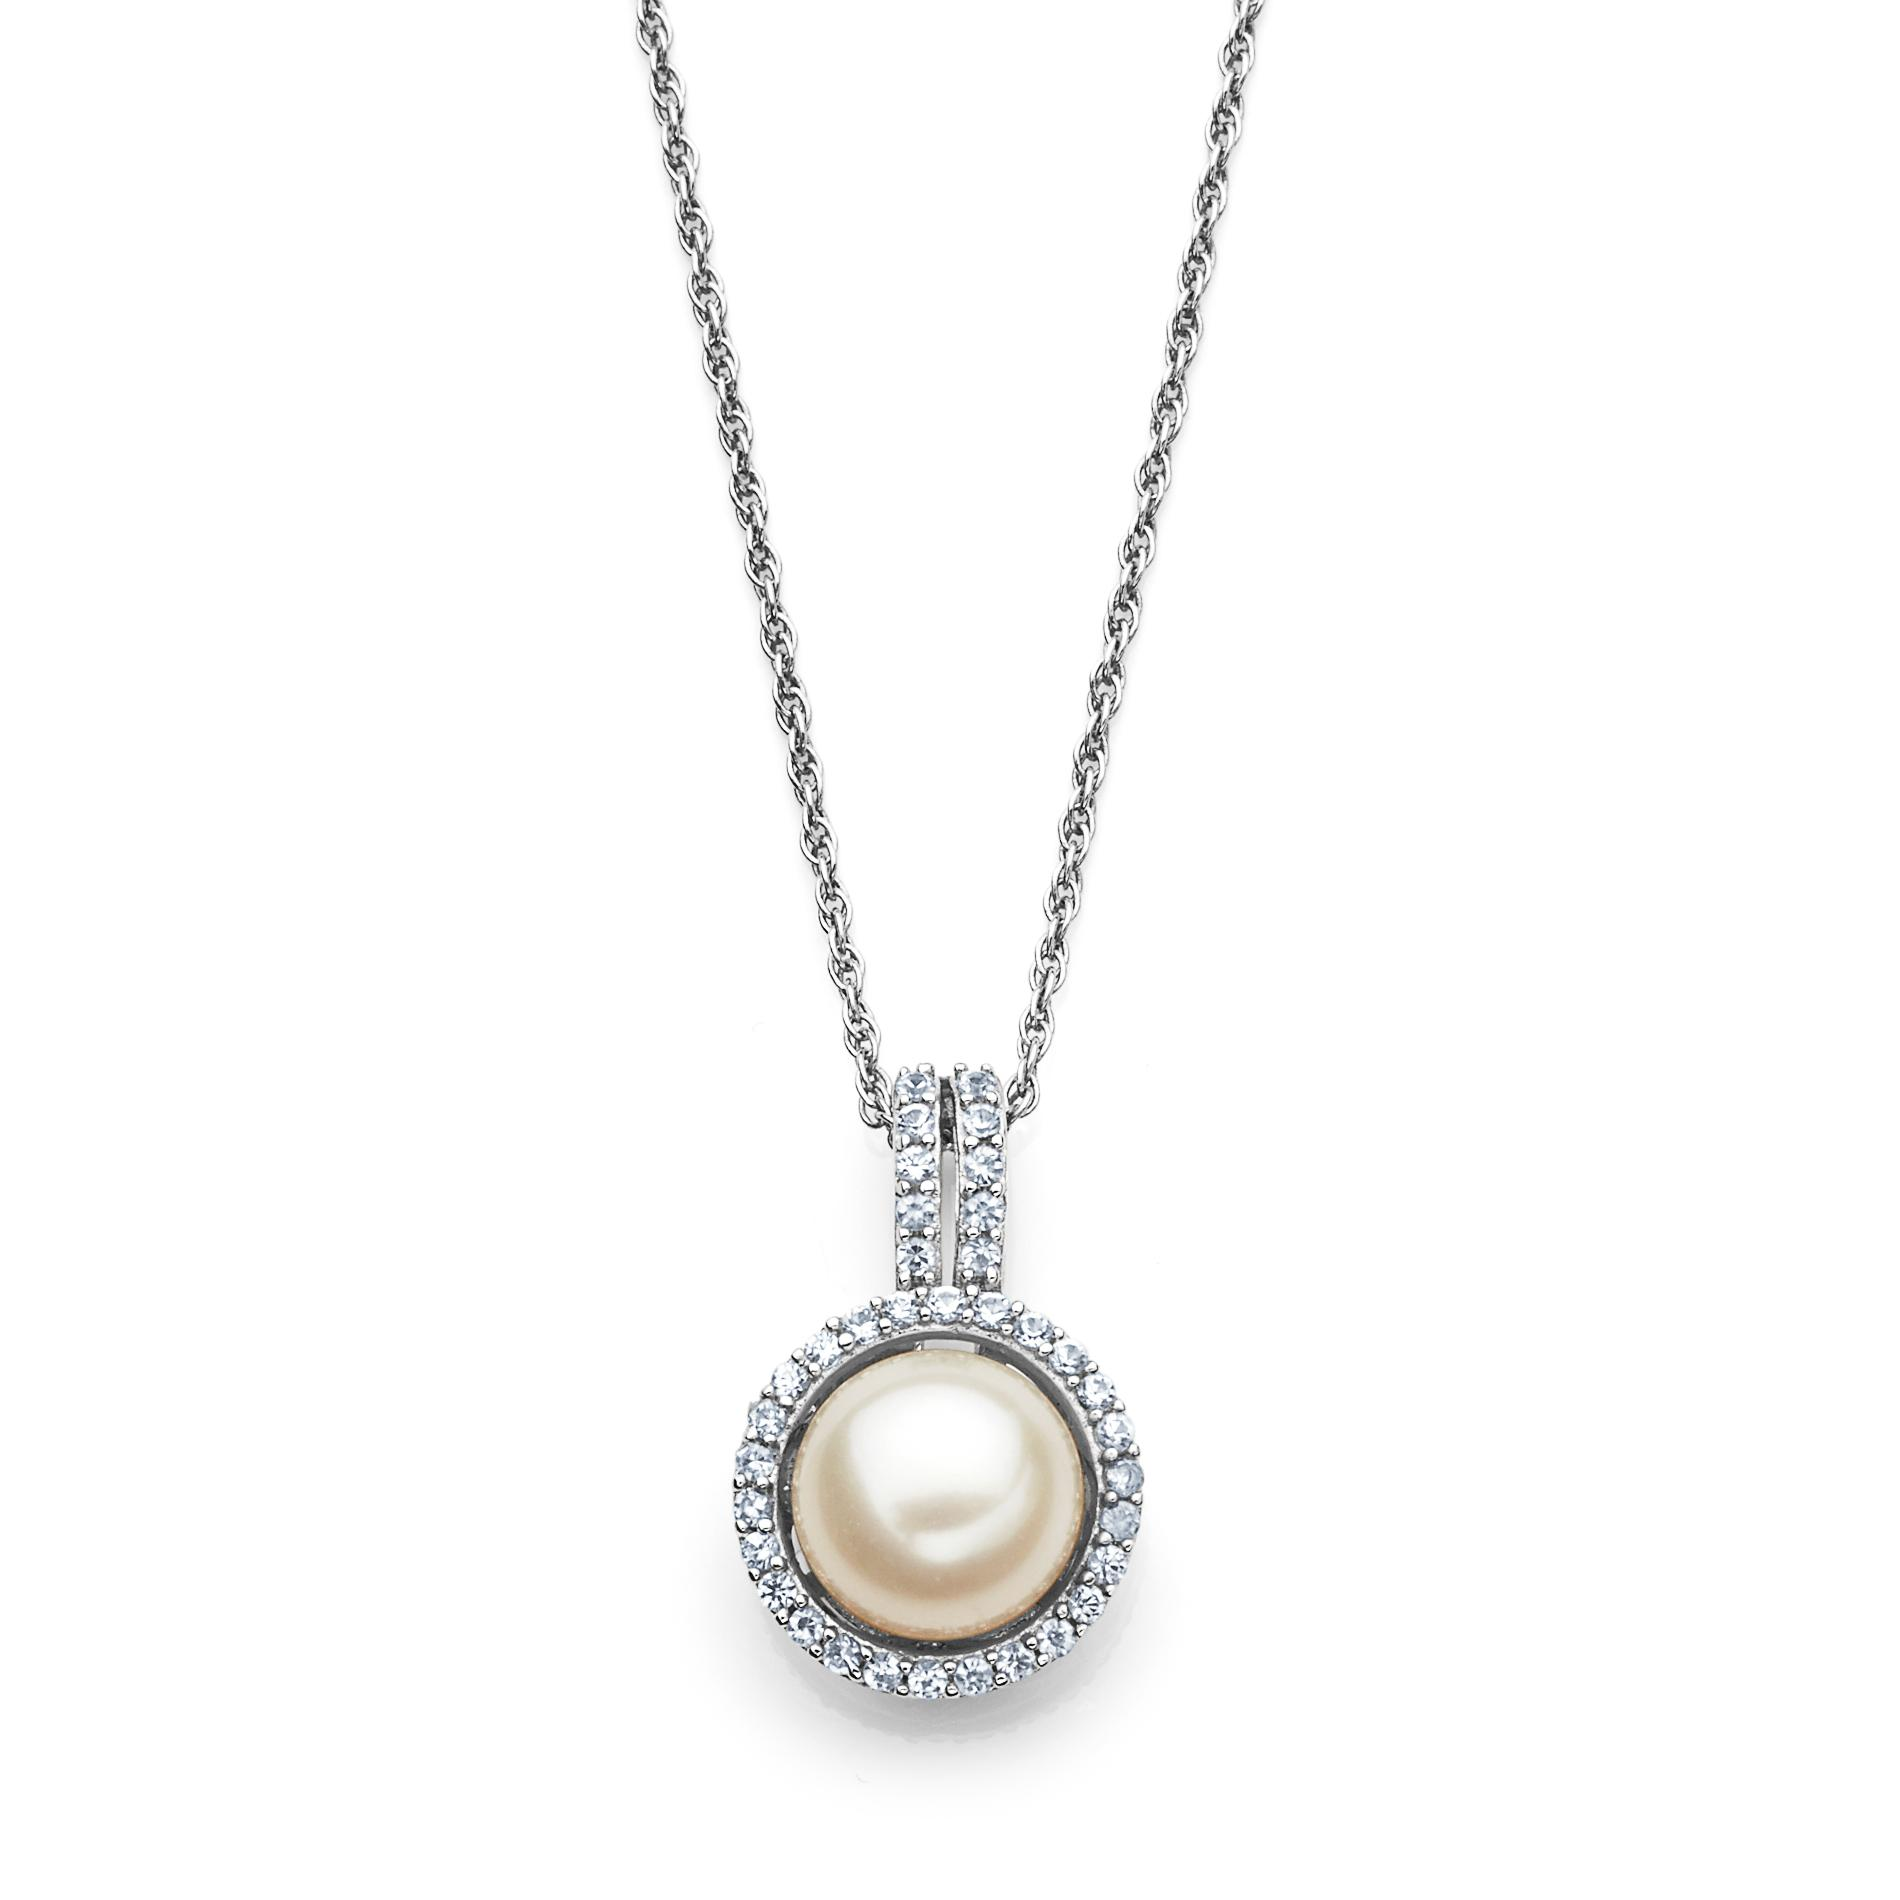 Pearl & Lab Created White Sapphire Pendant Necklace PartNumber: 04472395000P KsnValue: 04472395000 MfgPartNumber: 33653L22SS